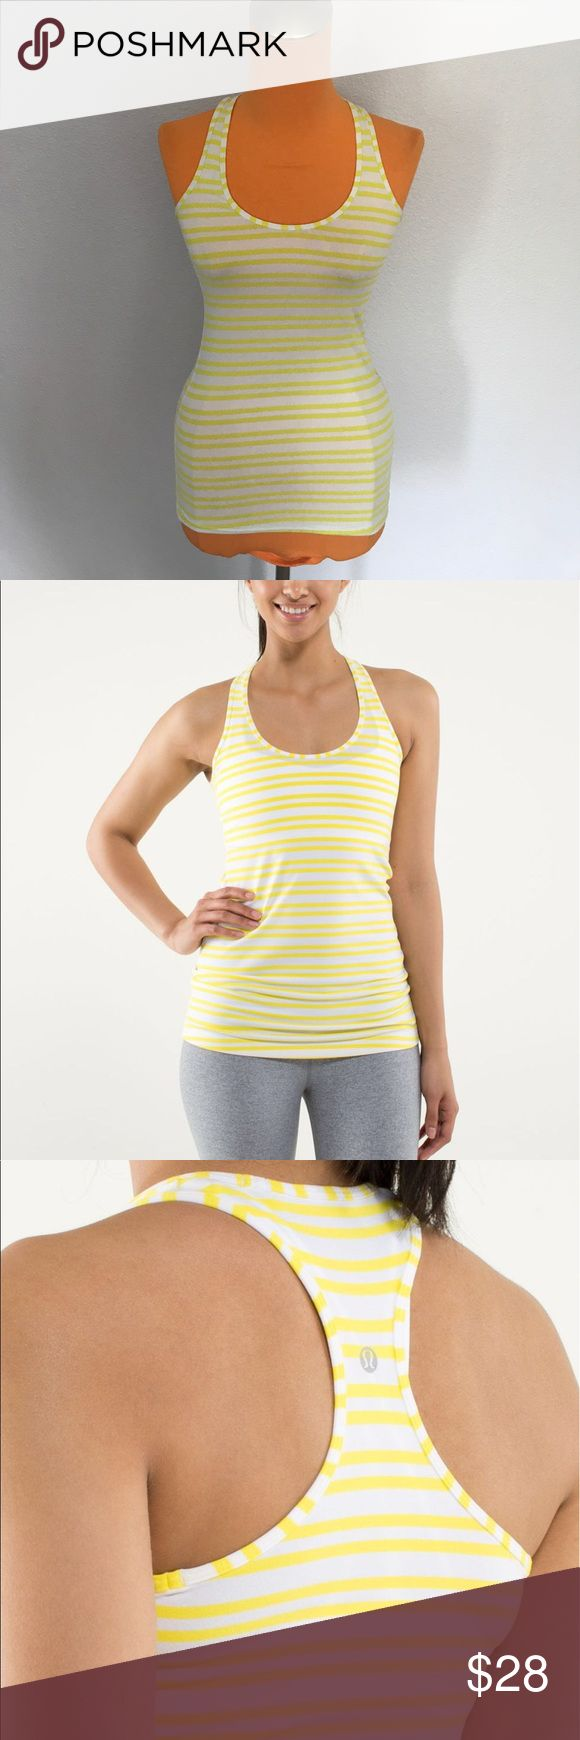 """Lululemon Twin Stripe Sizzle Cool Racerback 26"""" length 12.5"""" armpit to armpit. Designed for training, yoga or running. Sits right against your body. Twin Stripe sizzle pattern. Which is a white tank with yellow stripe. Size tag off but see measurements, is between 2/4. Cool Racerback. Has small faint mark on backside otherwise excellent condition. Bundle 2+ items for a discount. lululemon athletica Tops Tank Tops"""